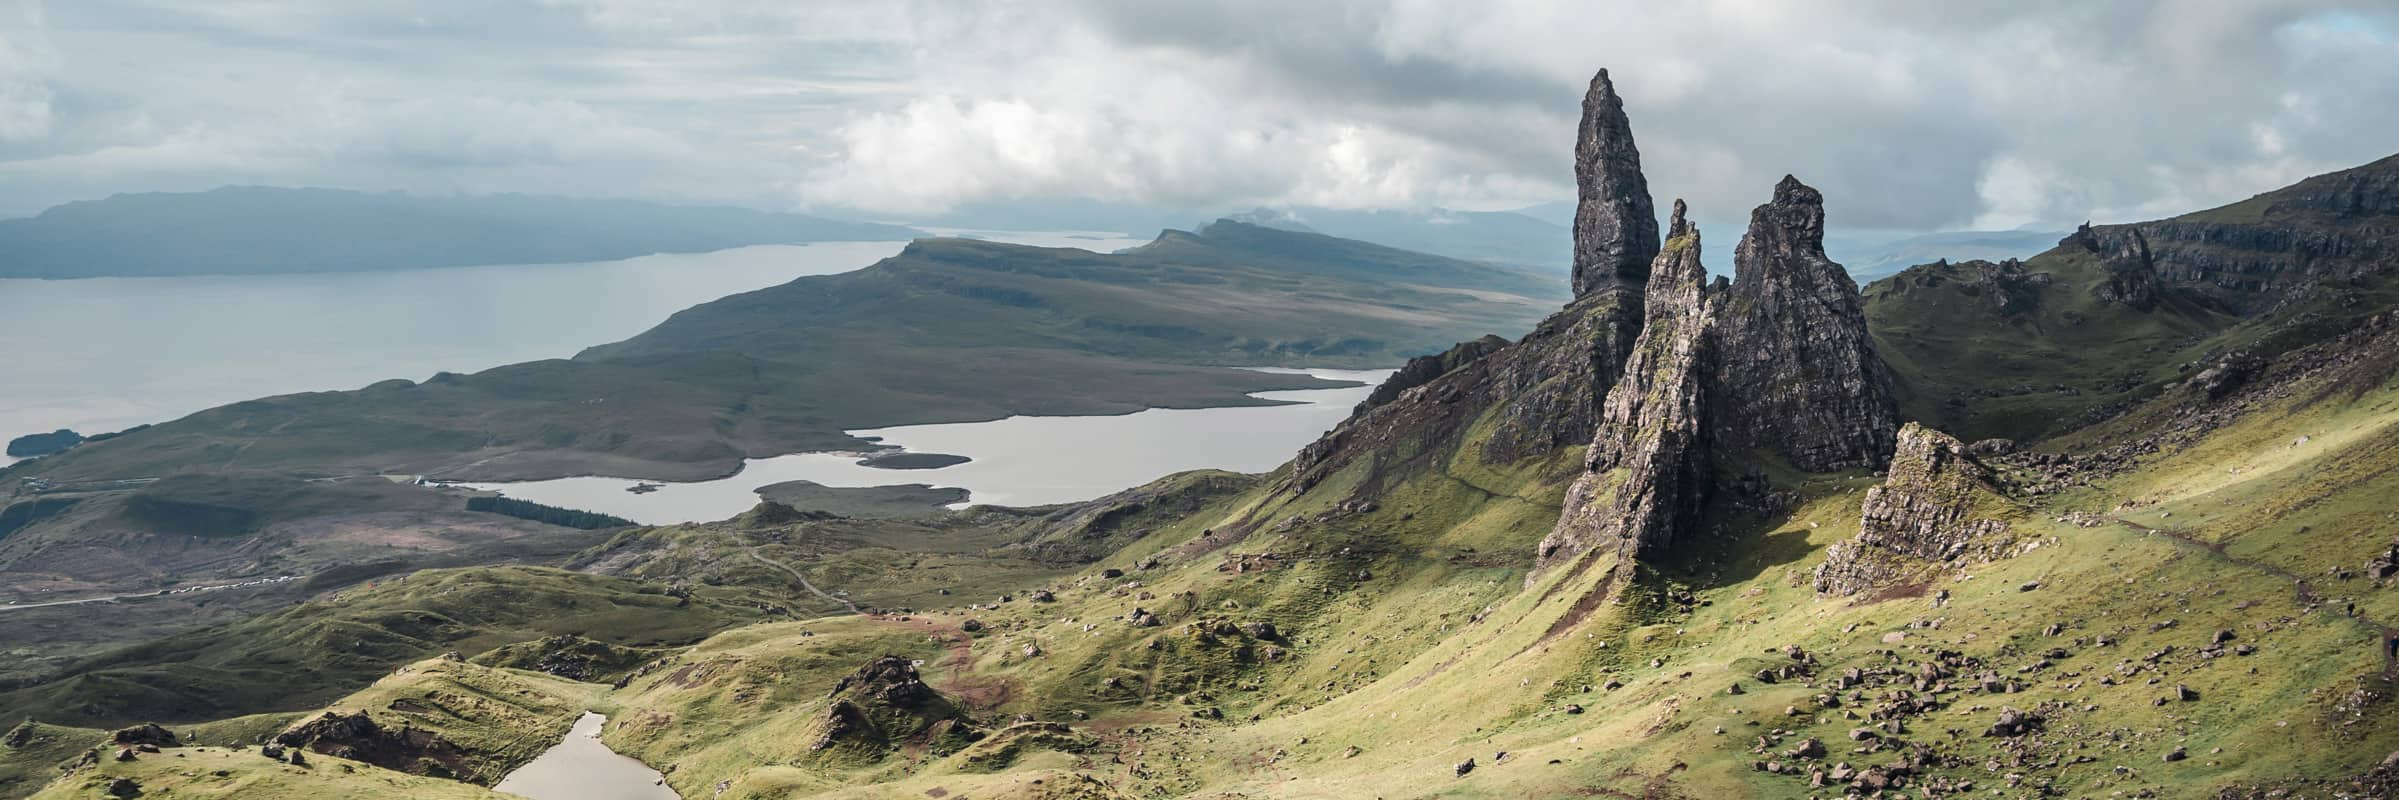 Helly Hansen, raincoat, Travel. Isle of Skye: Top 5 Locations You Don't Want to Miss